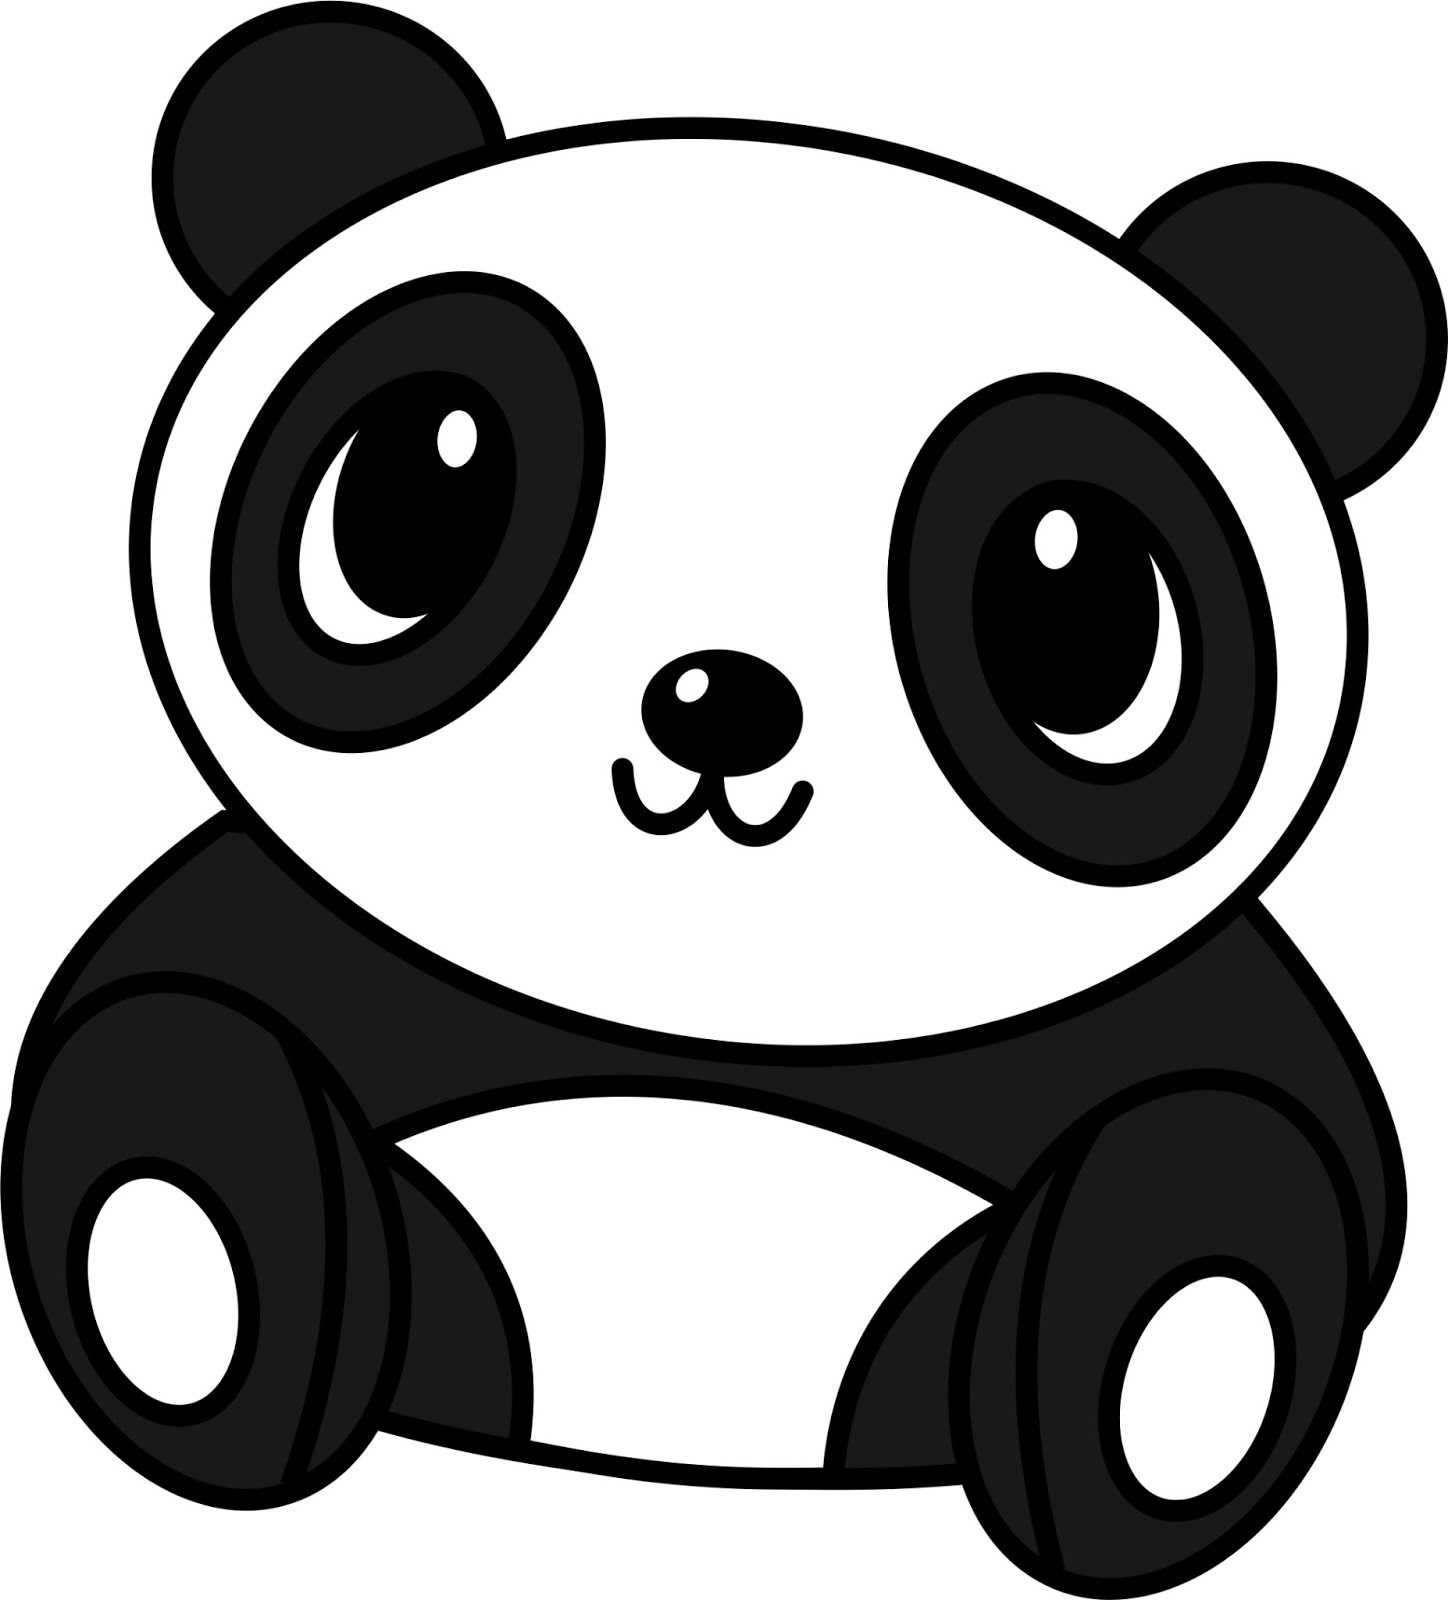 How to draw a baby panda